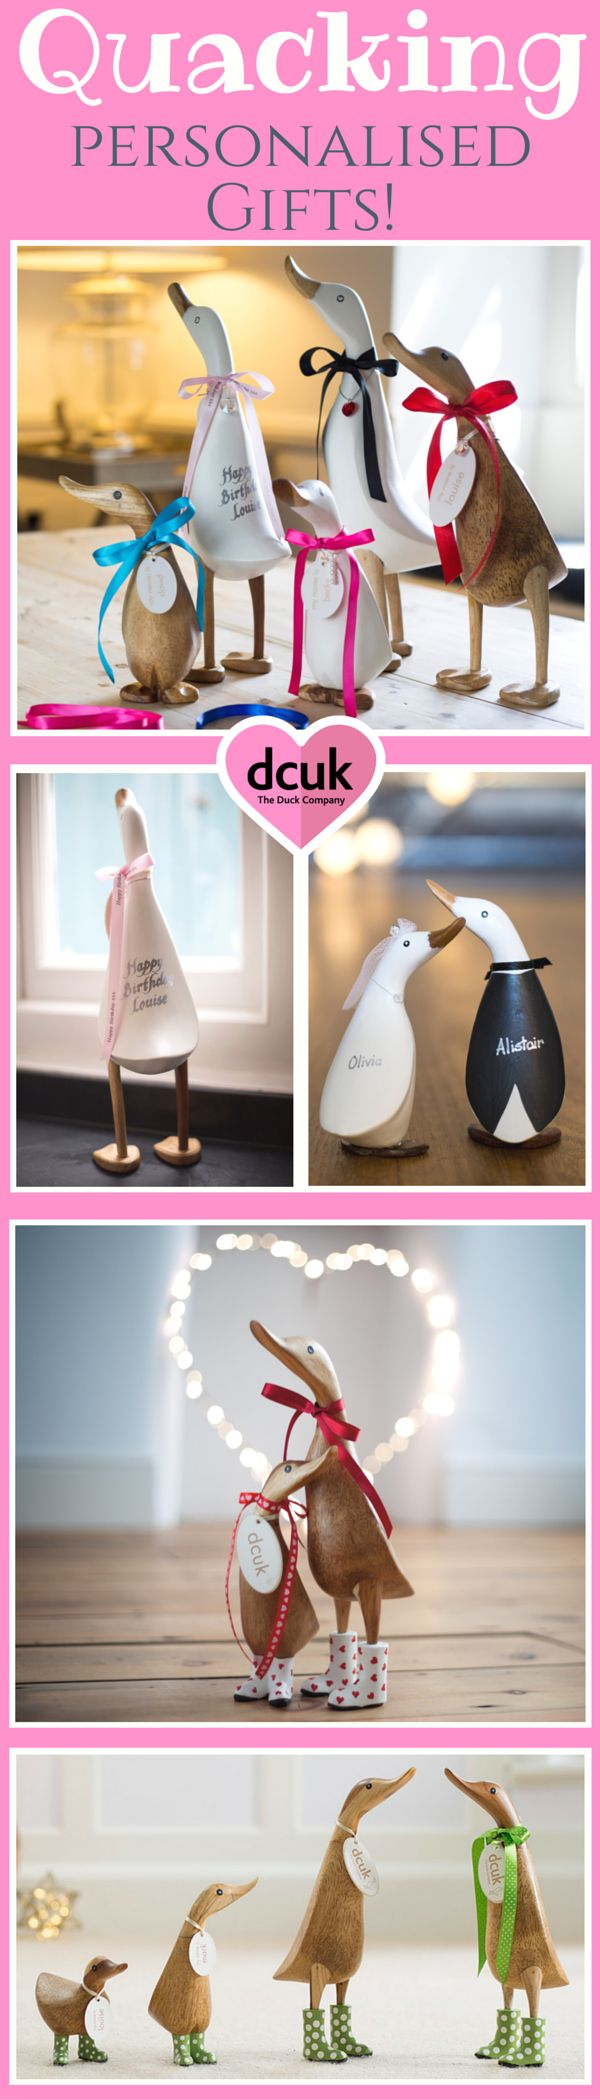 For quacking personalised gifts for all occasions, take a waddle over to our website to view our huge variety of duck, penguin and owl gift ideas! The Duck Company, DCUK